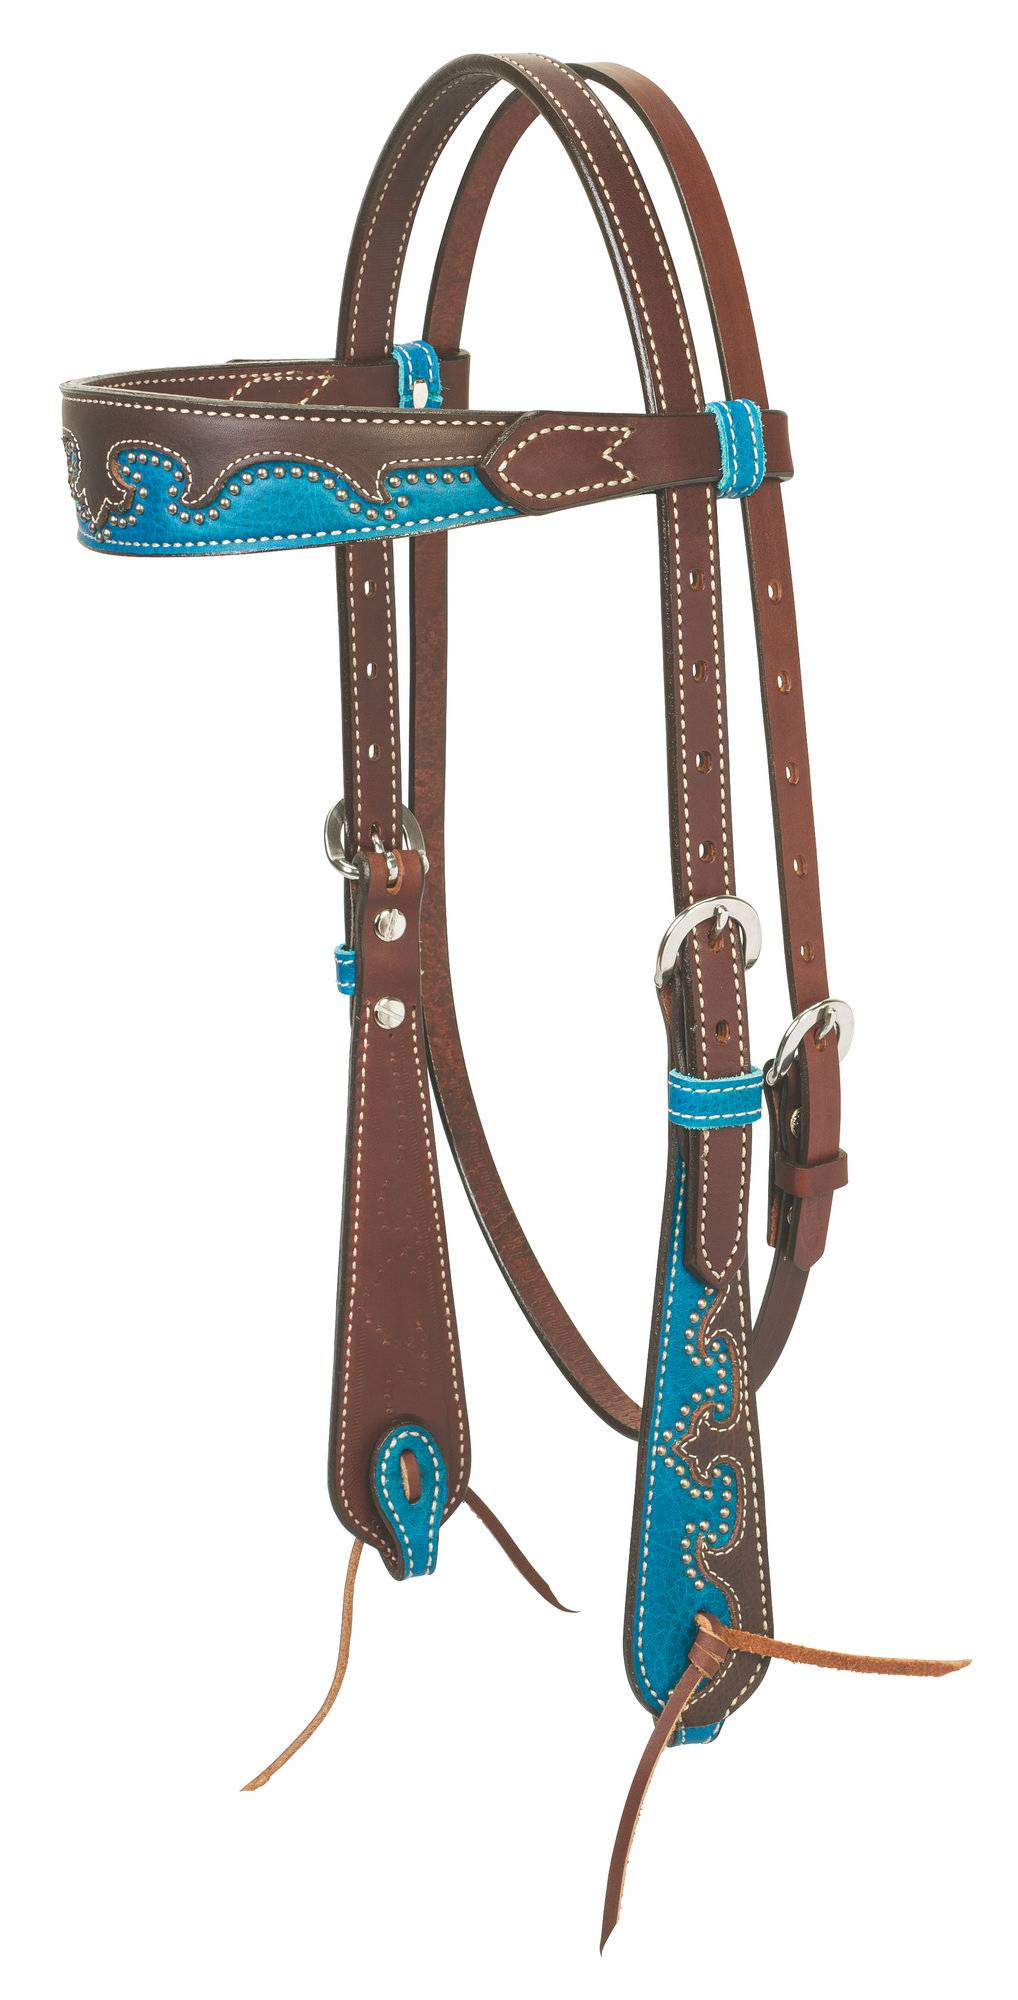 Weaver Wingtip Browband Headstall